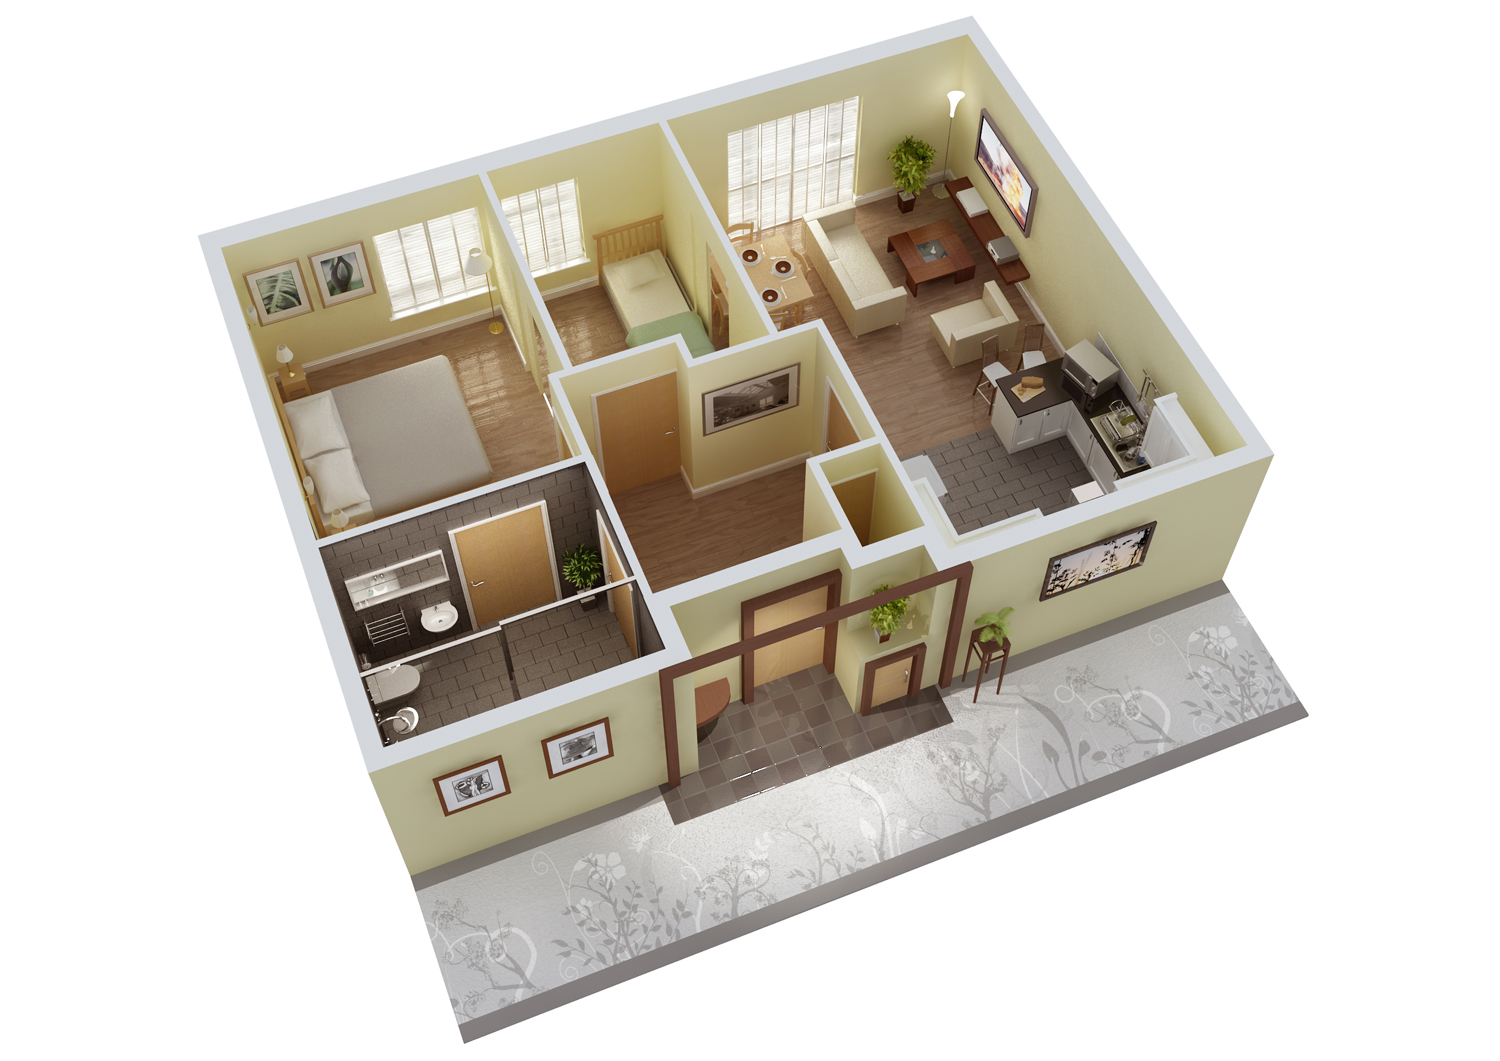 Mathematics resources project 3d floor plan 3d building design